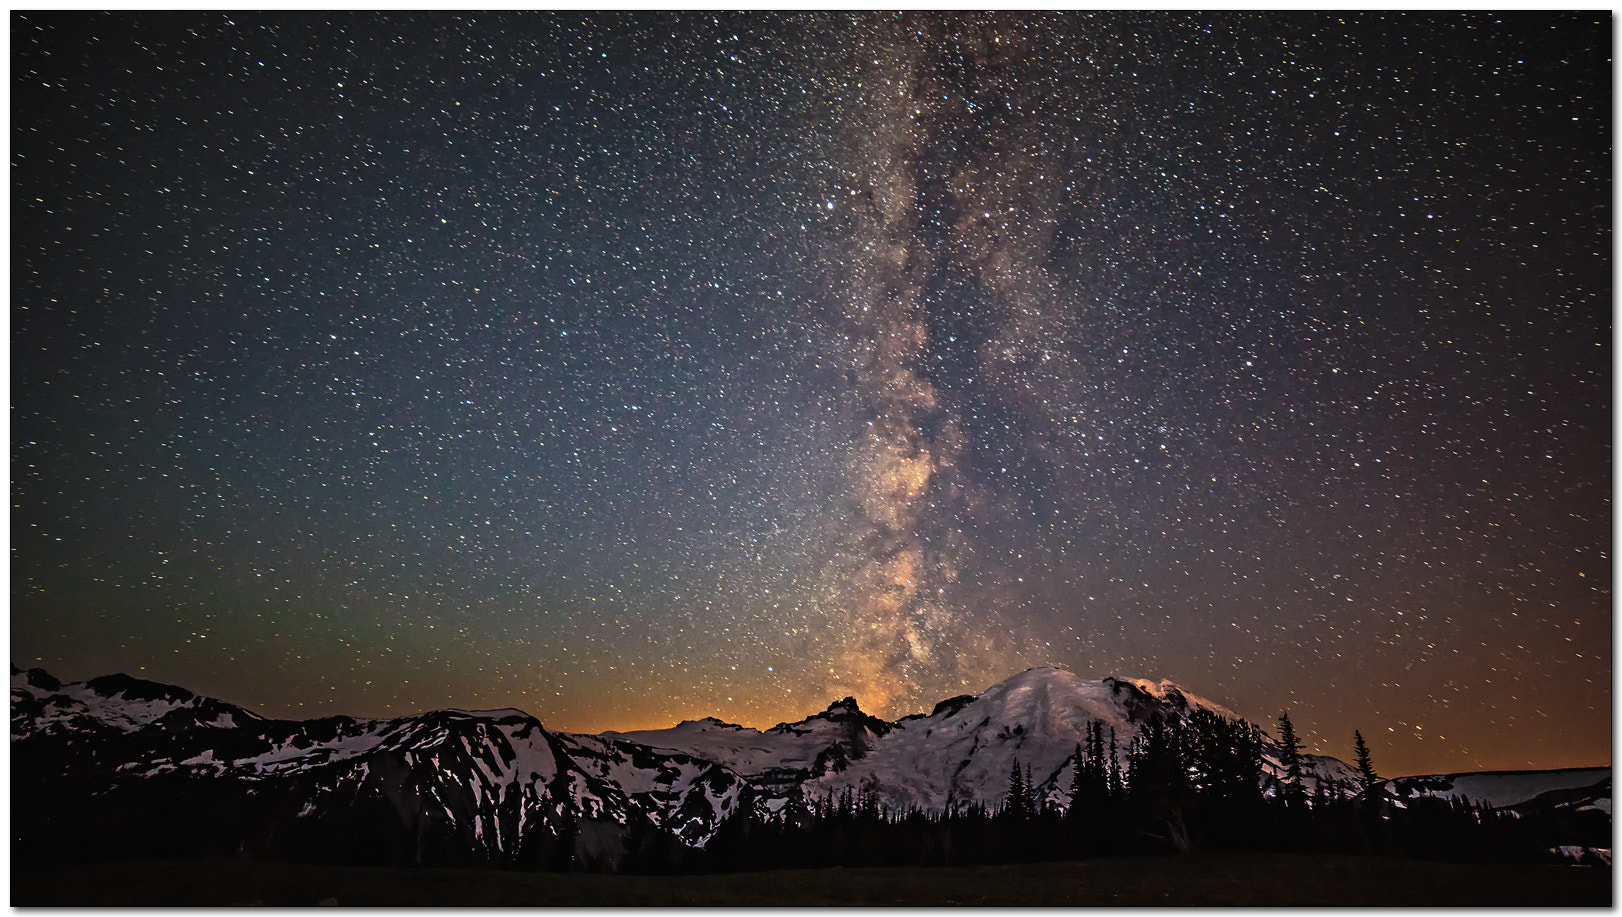 Photograph Milky Way over Mt. Rainier by Jameel Hyder on 500px